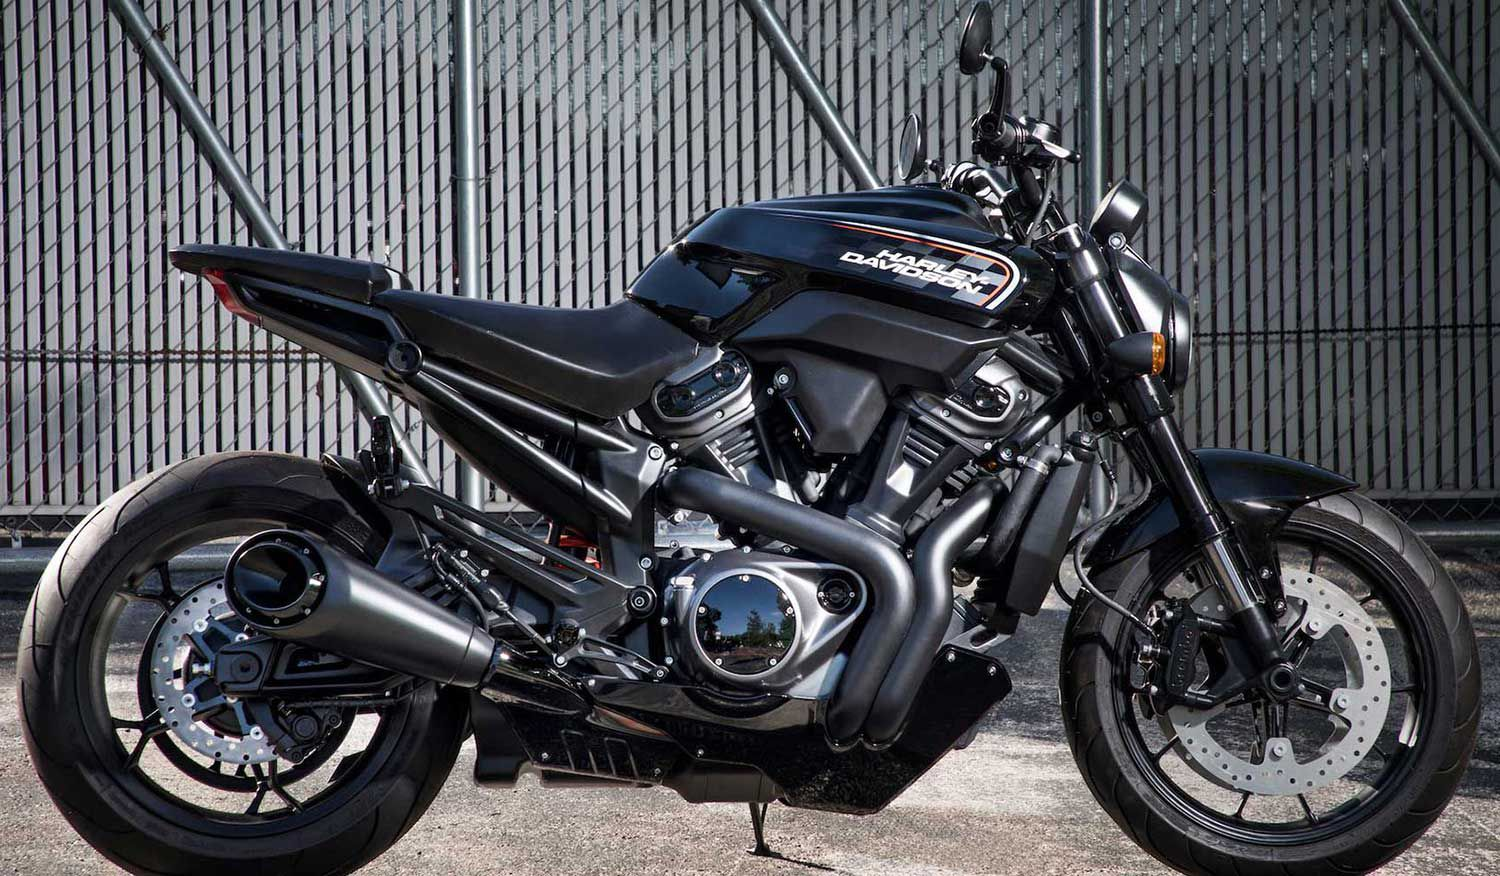 How will Harley-Davidson stack up to the existing stock of nakeds with its Streetfighter? We're eager to find out.